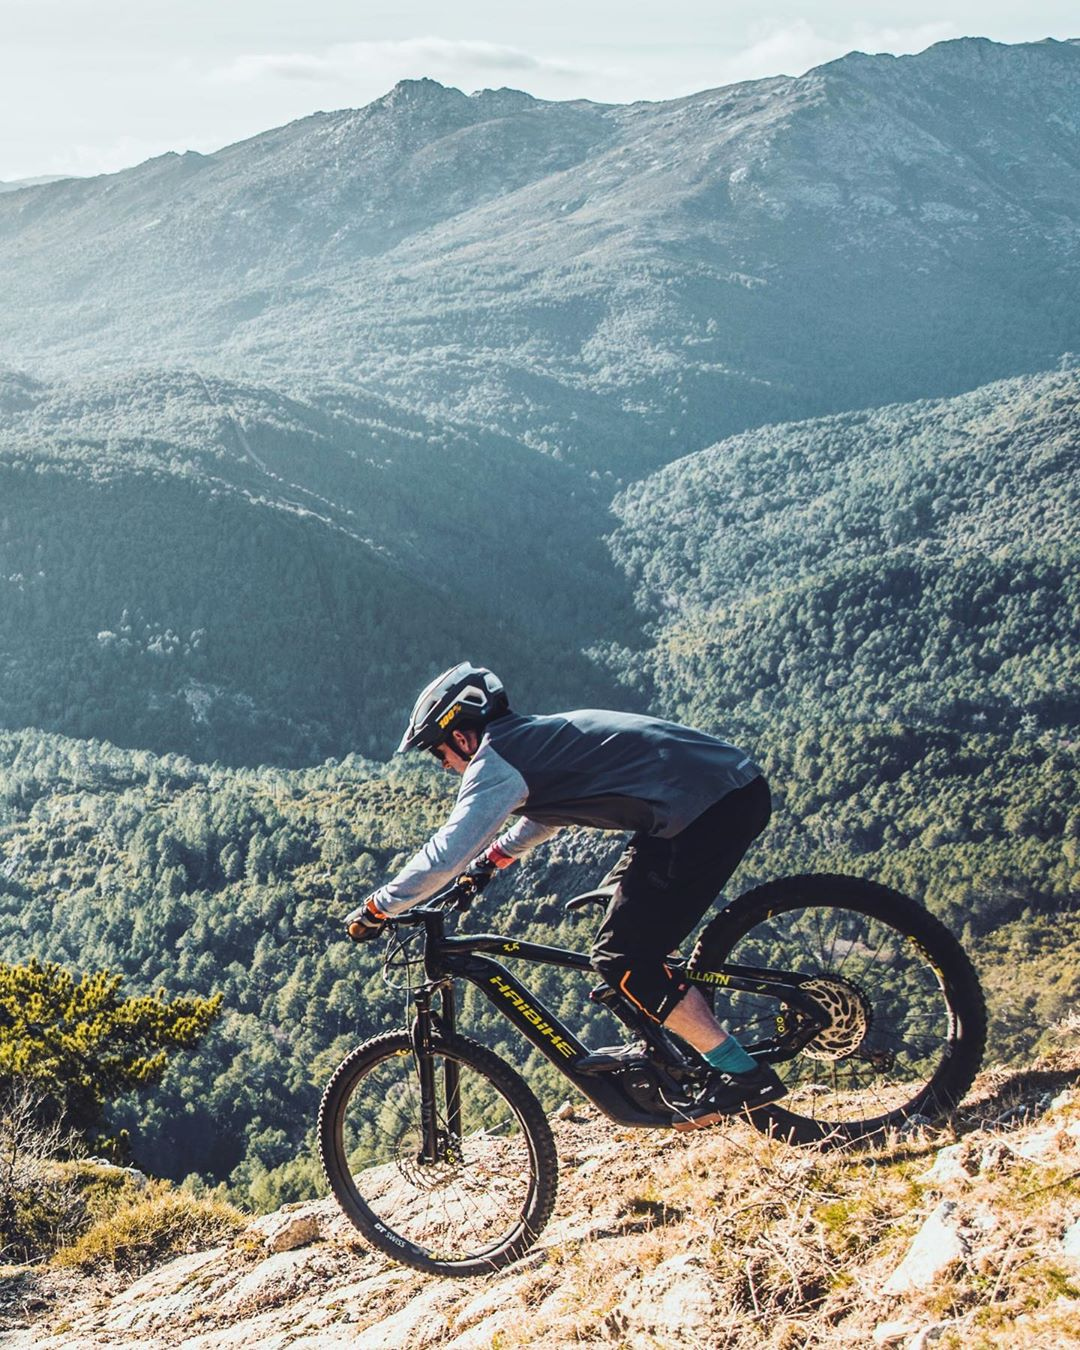 What an incredible island Corsica is. After a week there we barely scratched the surface of what it offers. Hoping to return! 📷 @yannickgranieri #emtb #ebike #enduro #ride100percent #eebit #mtb #mtbcorsica #downhillmtb #allmtn #allmountain